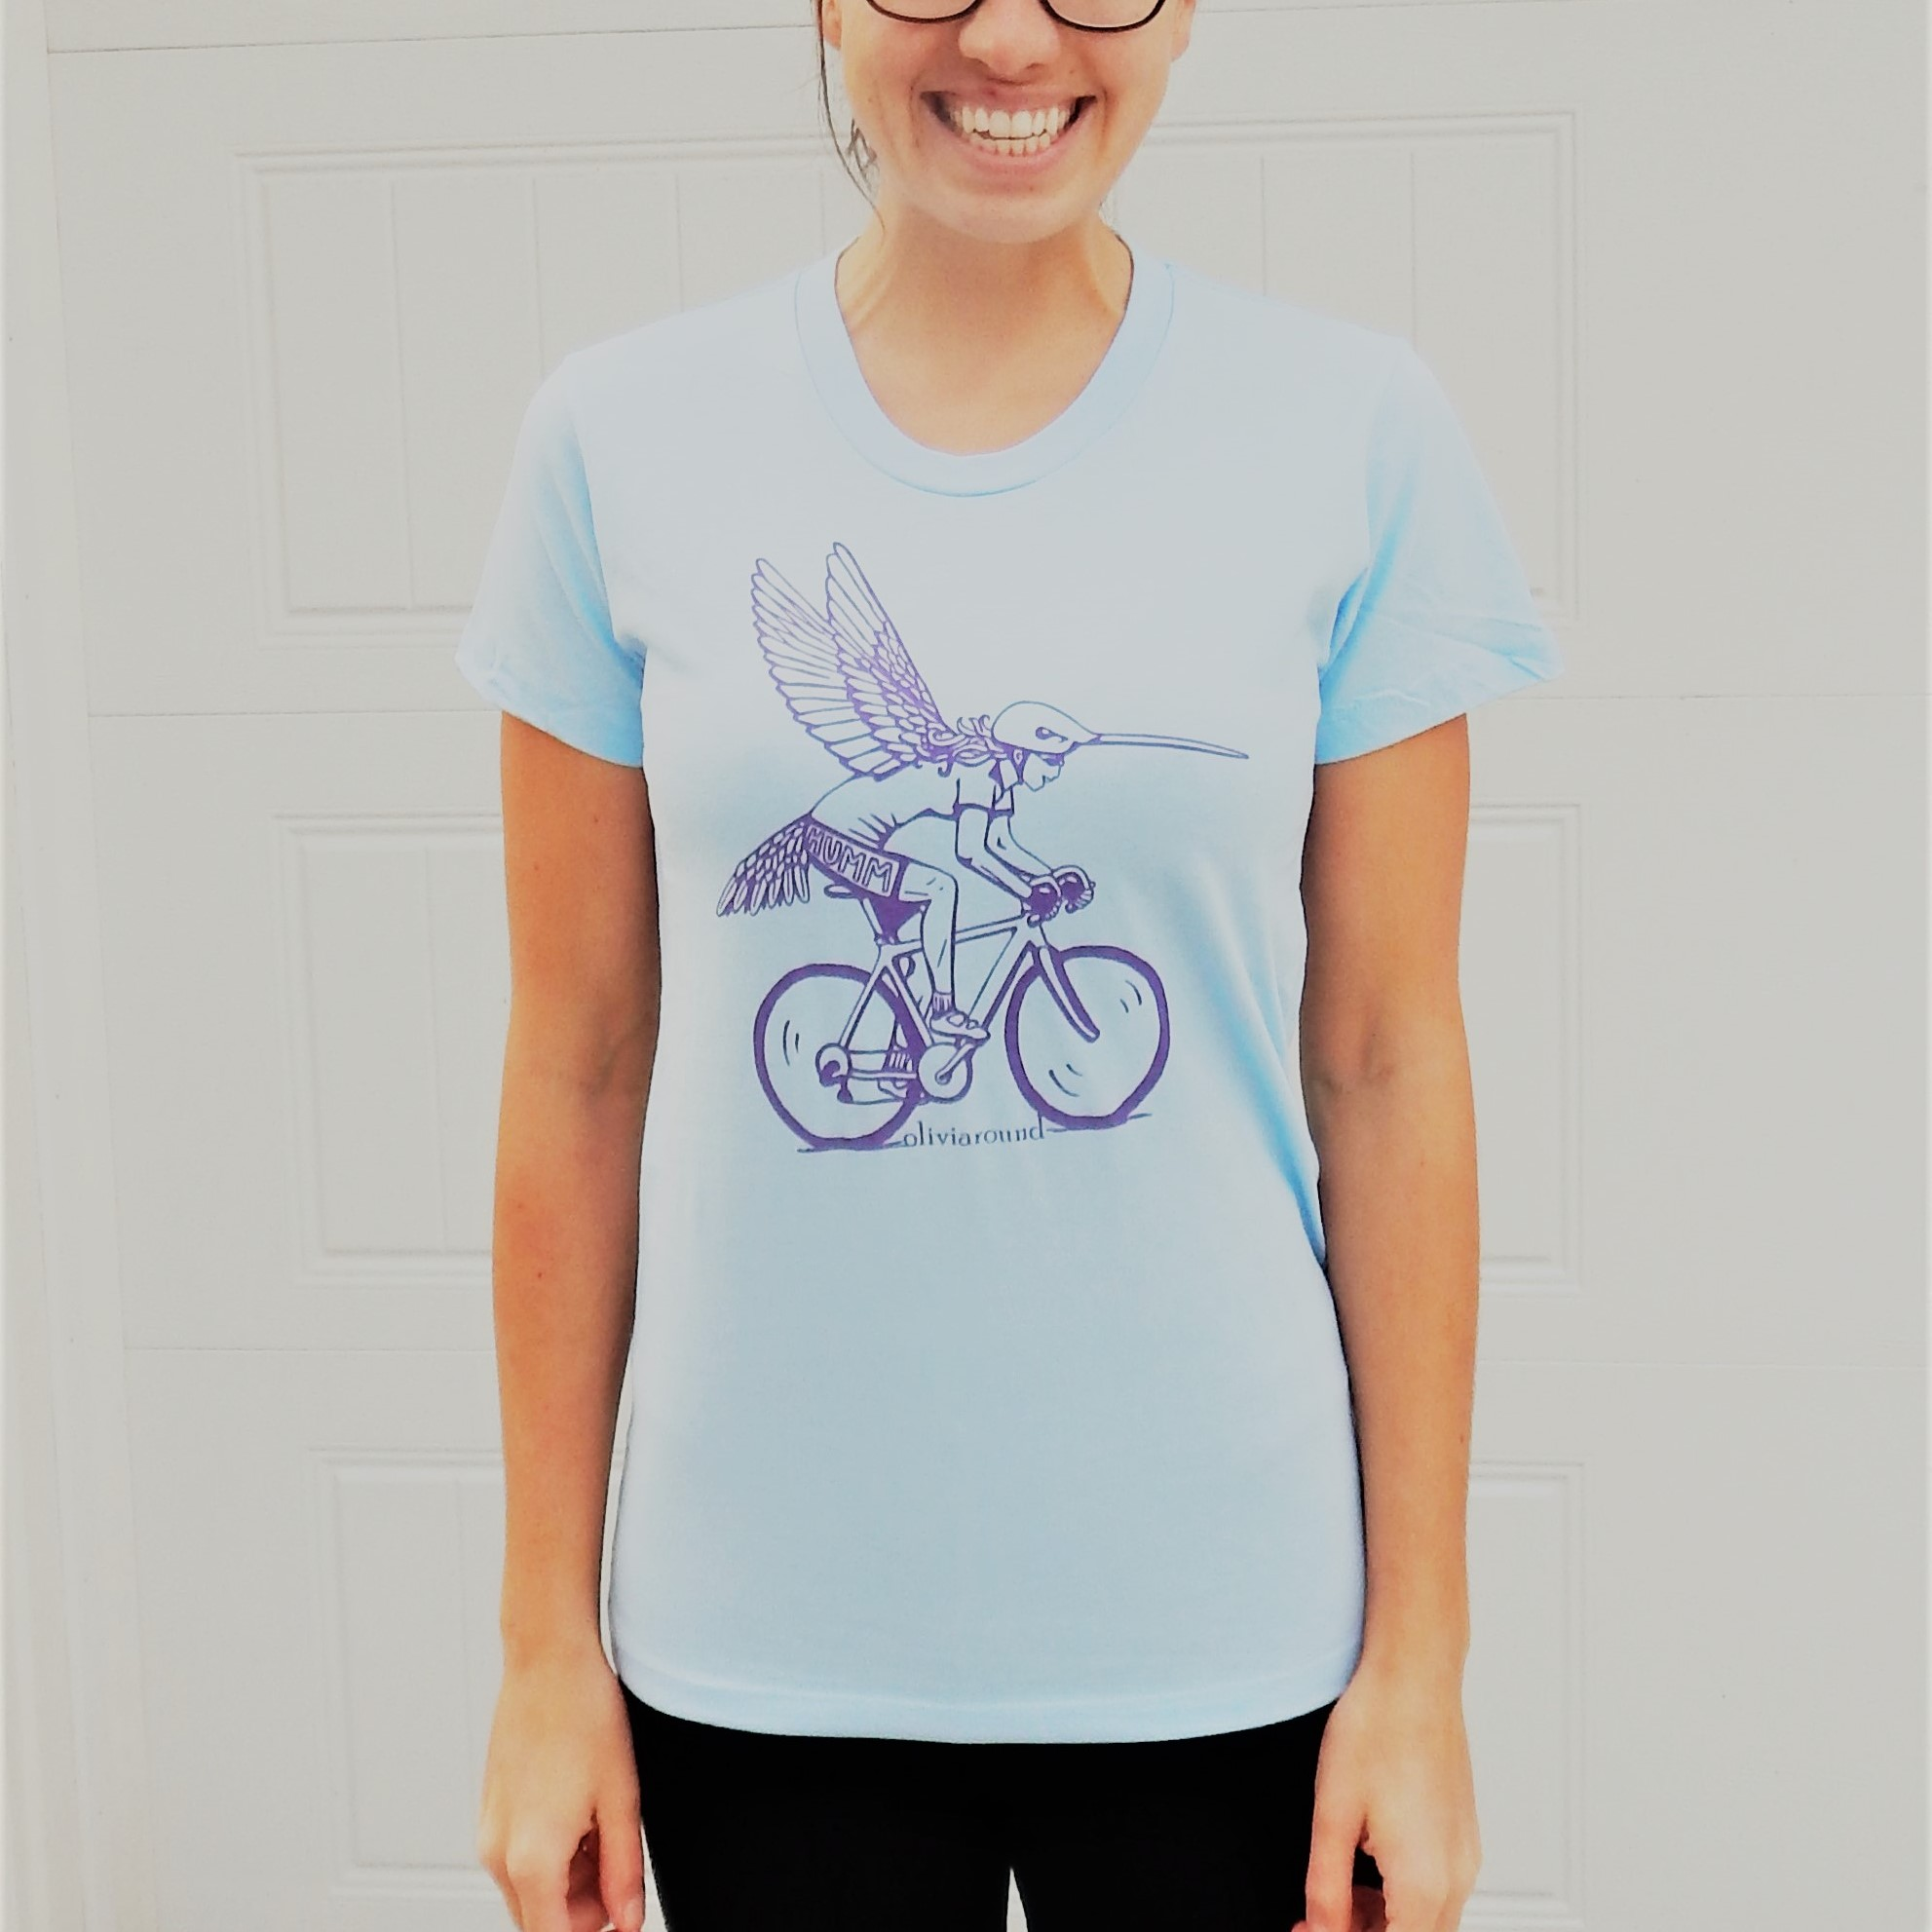 And check out my new tshirt designs on Etsy! -